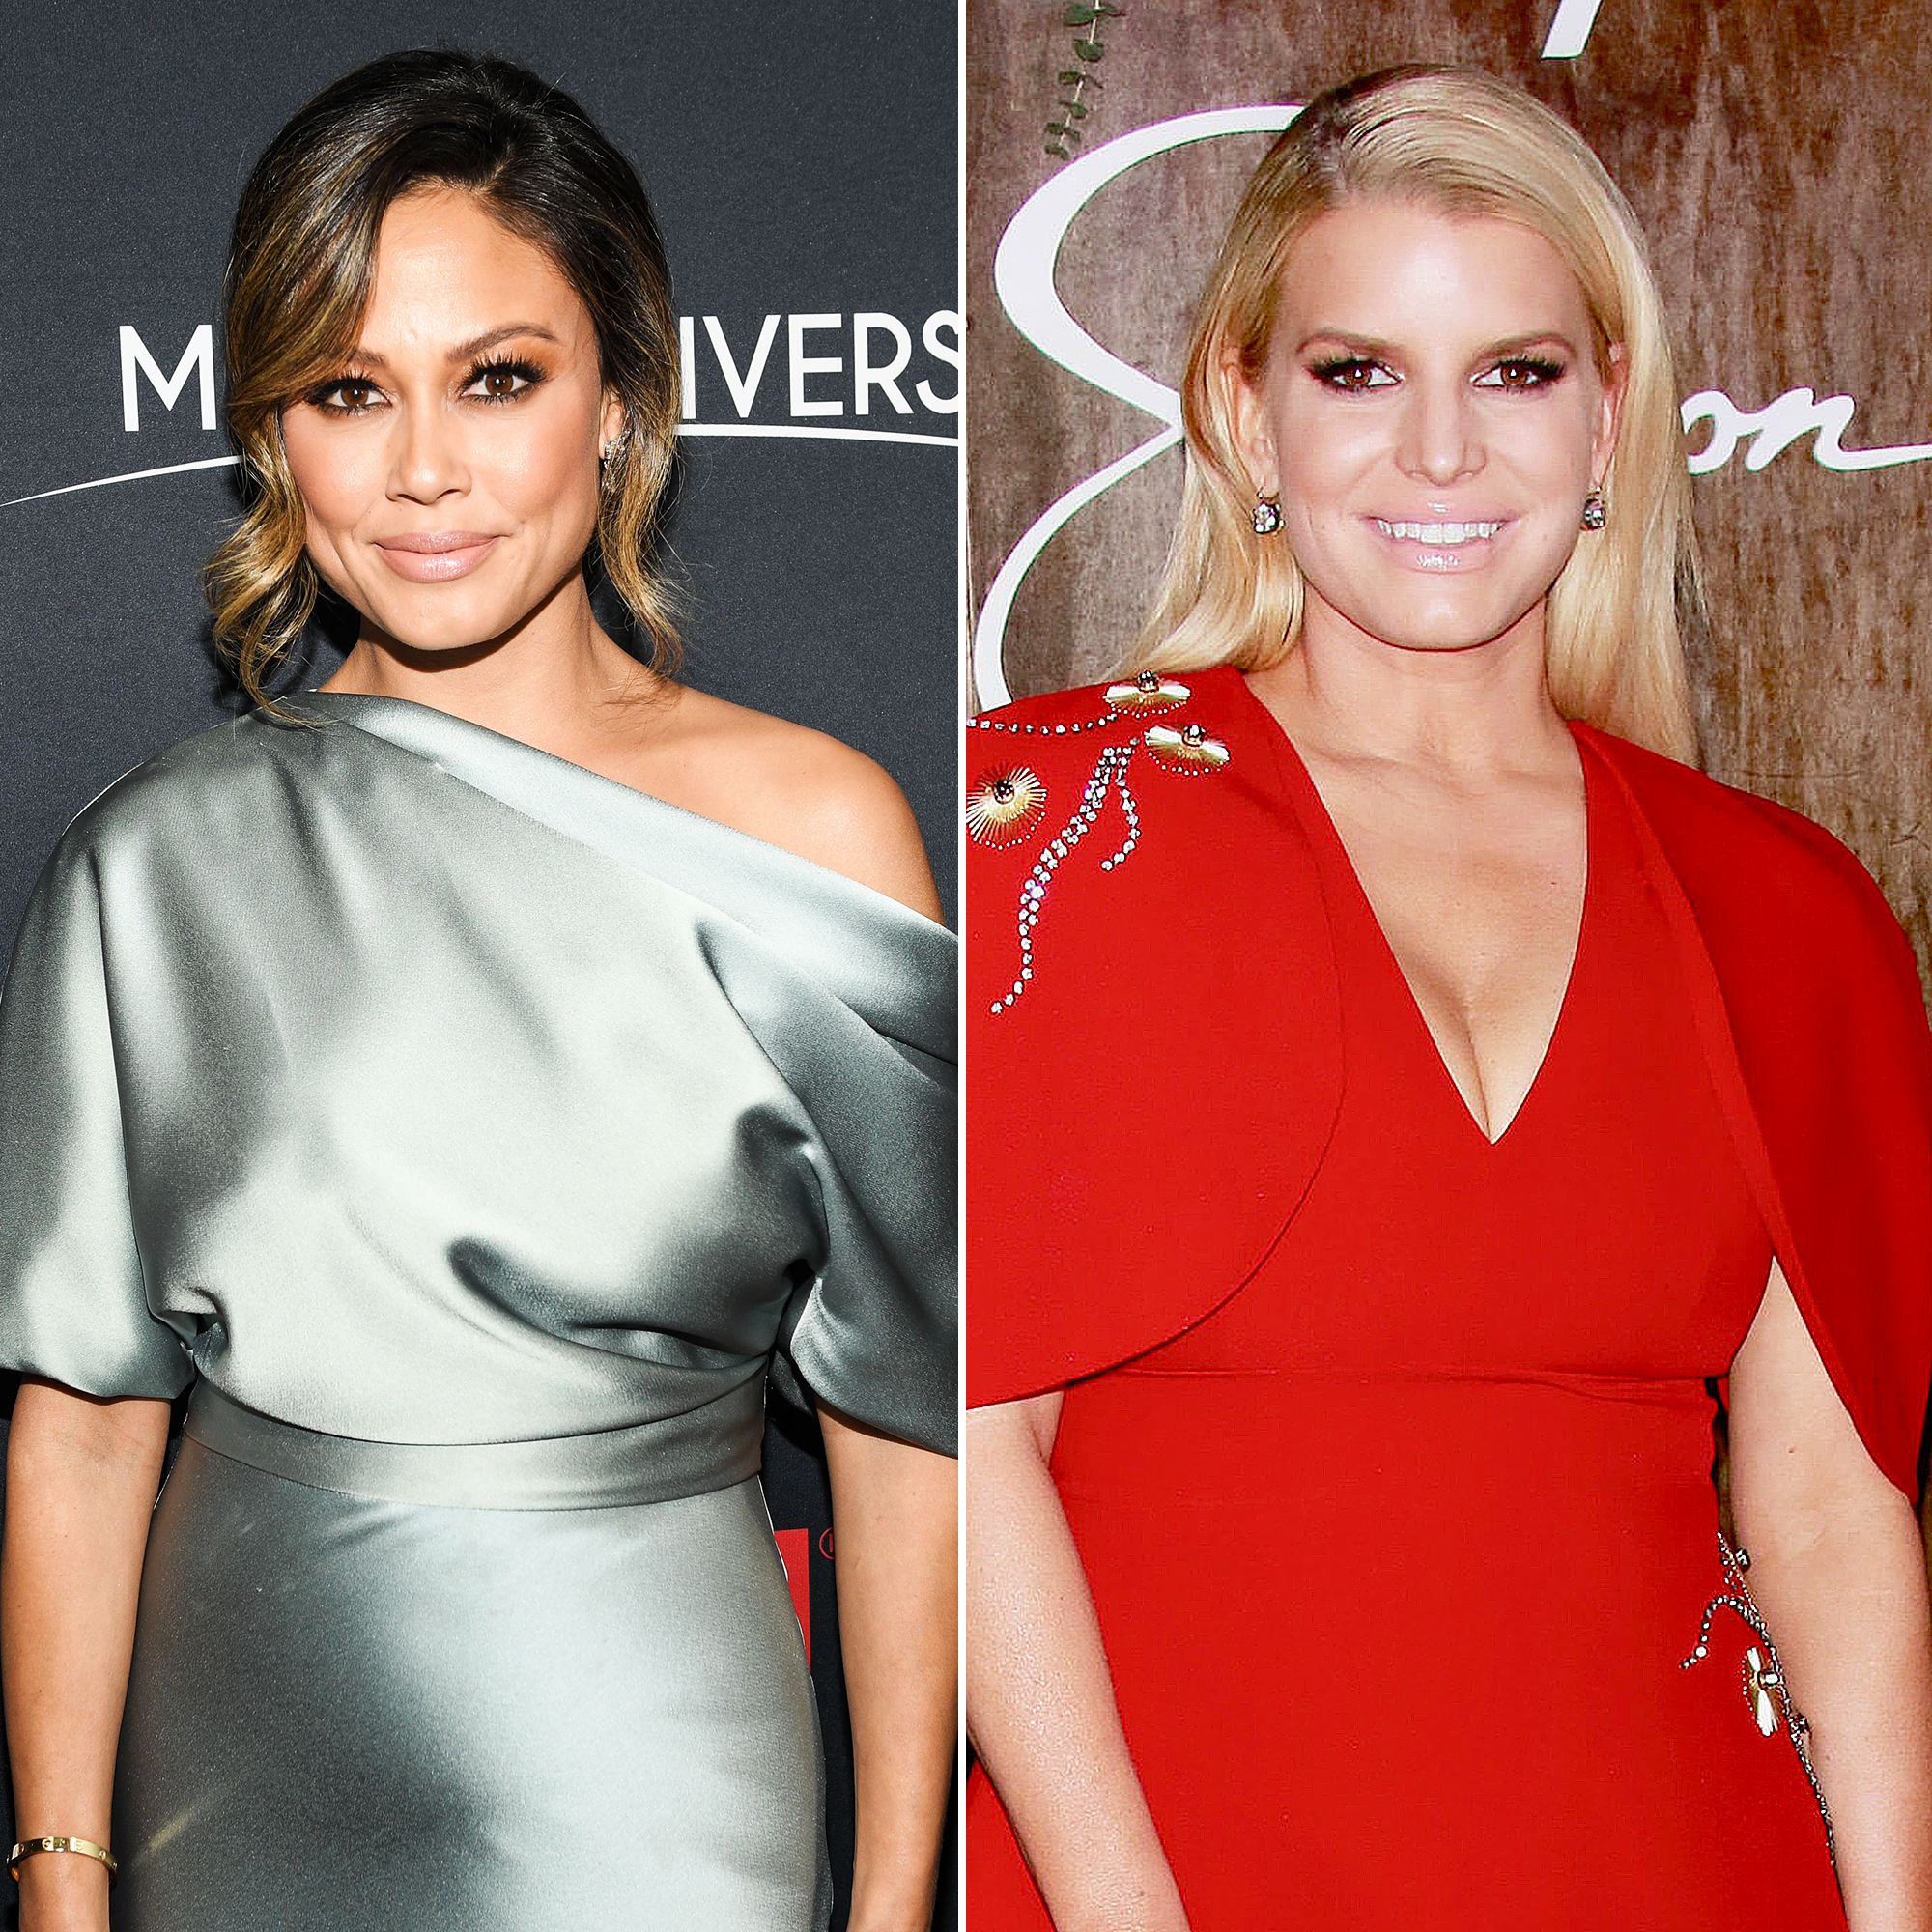 Vanessa-Lachey-Defends-Response-to-Question-About-Jessica-Simpson-Gift